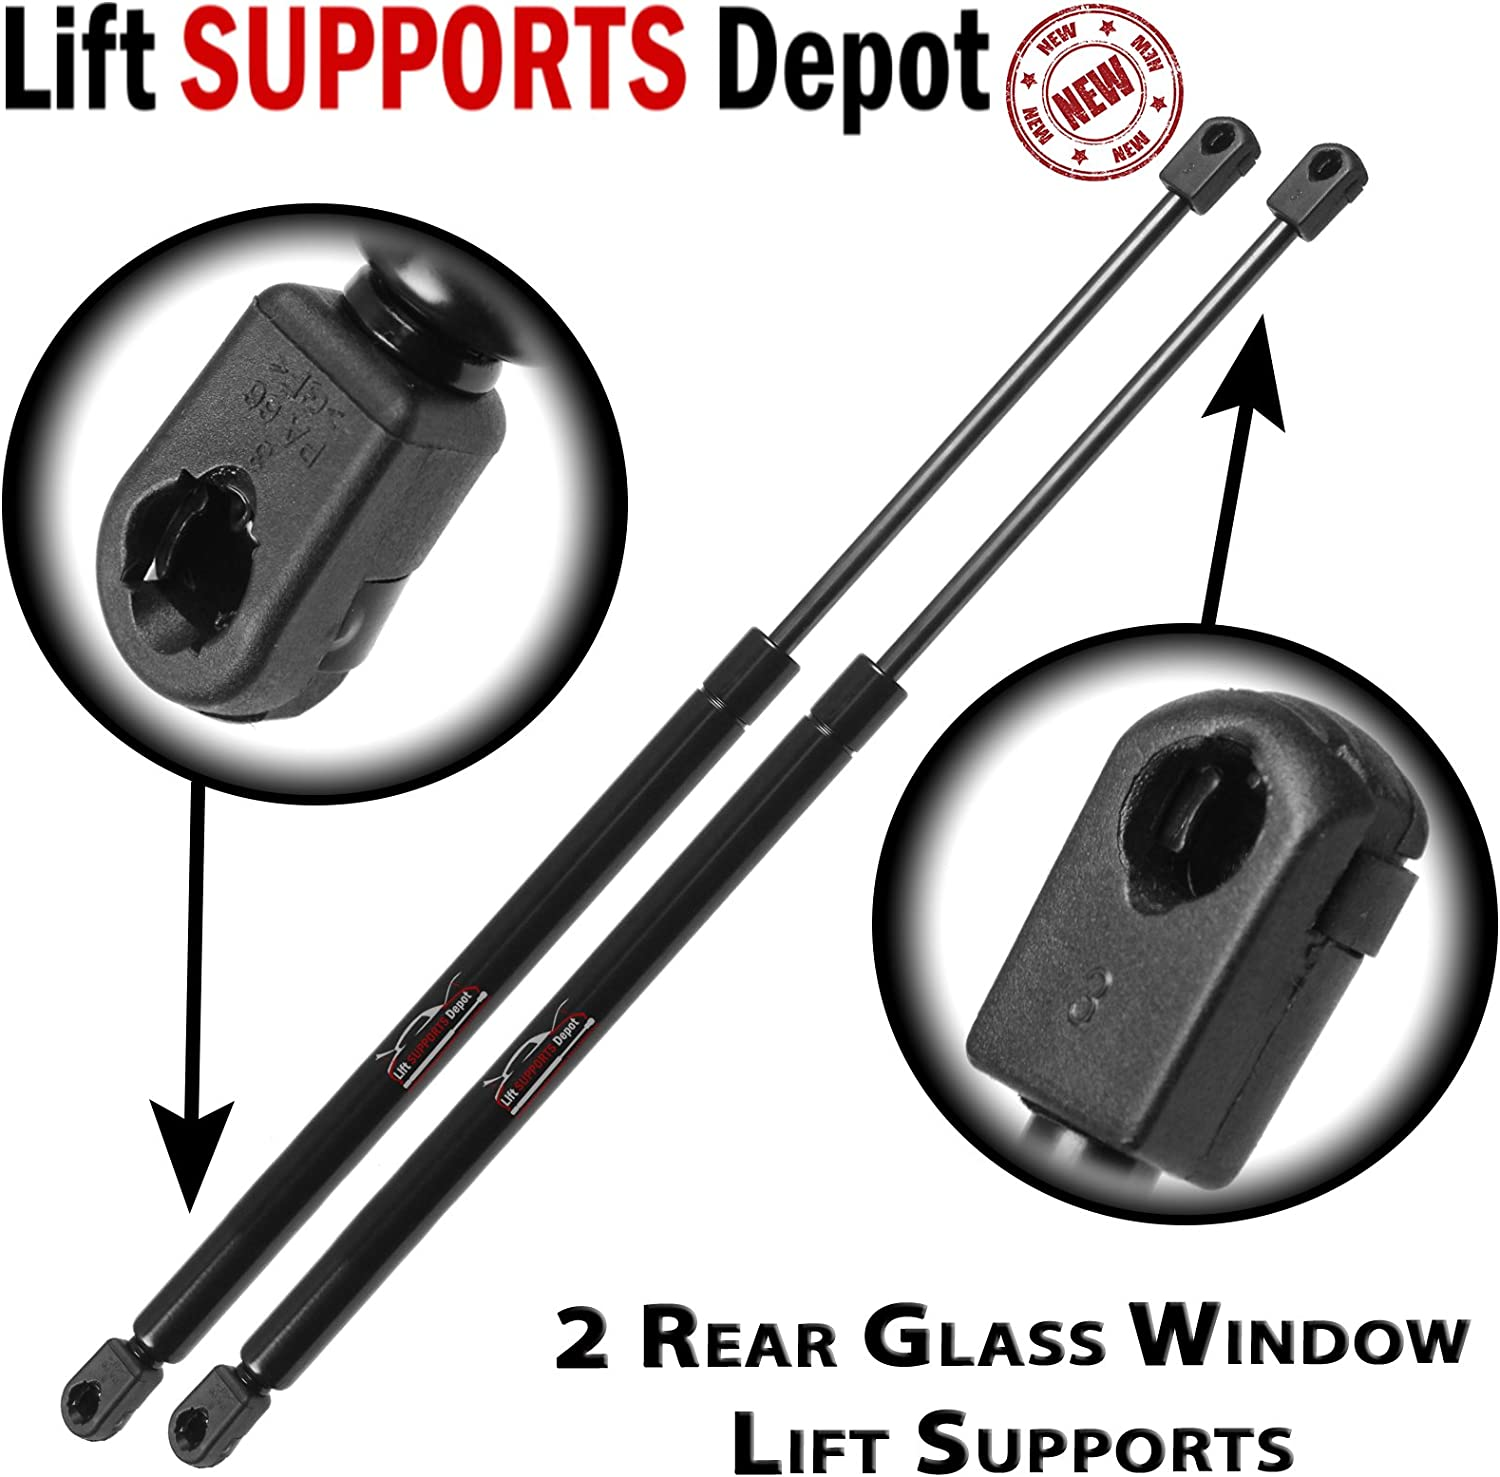 Quantity of of 2 Back Glass Lift Support Strong Arm 4372